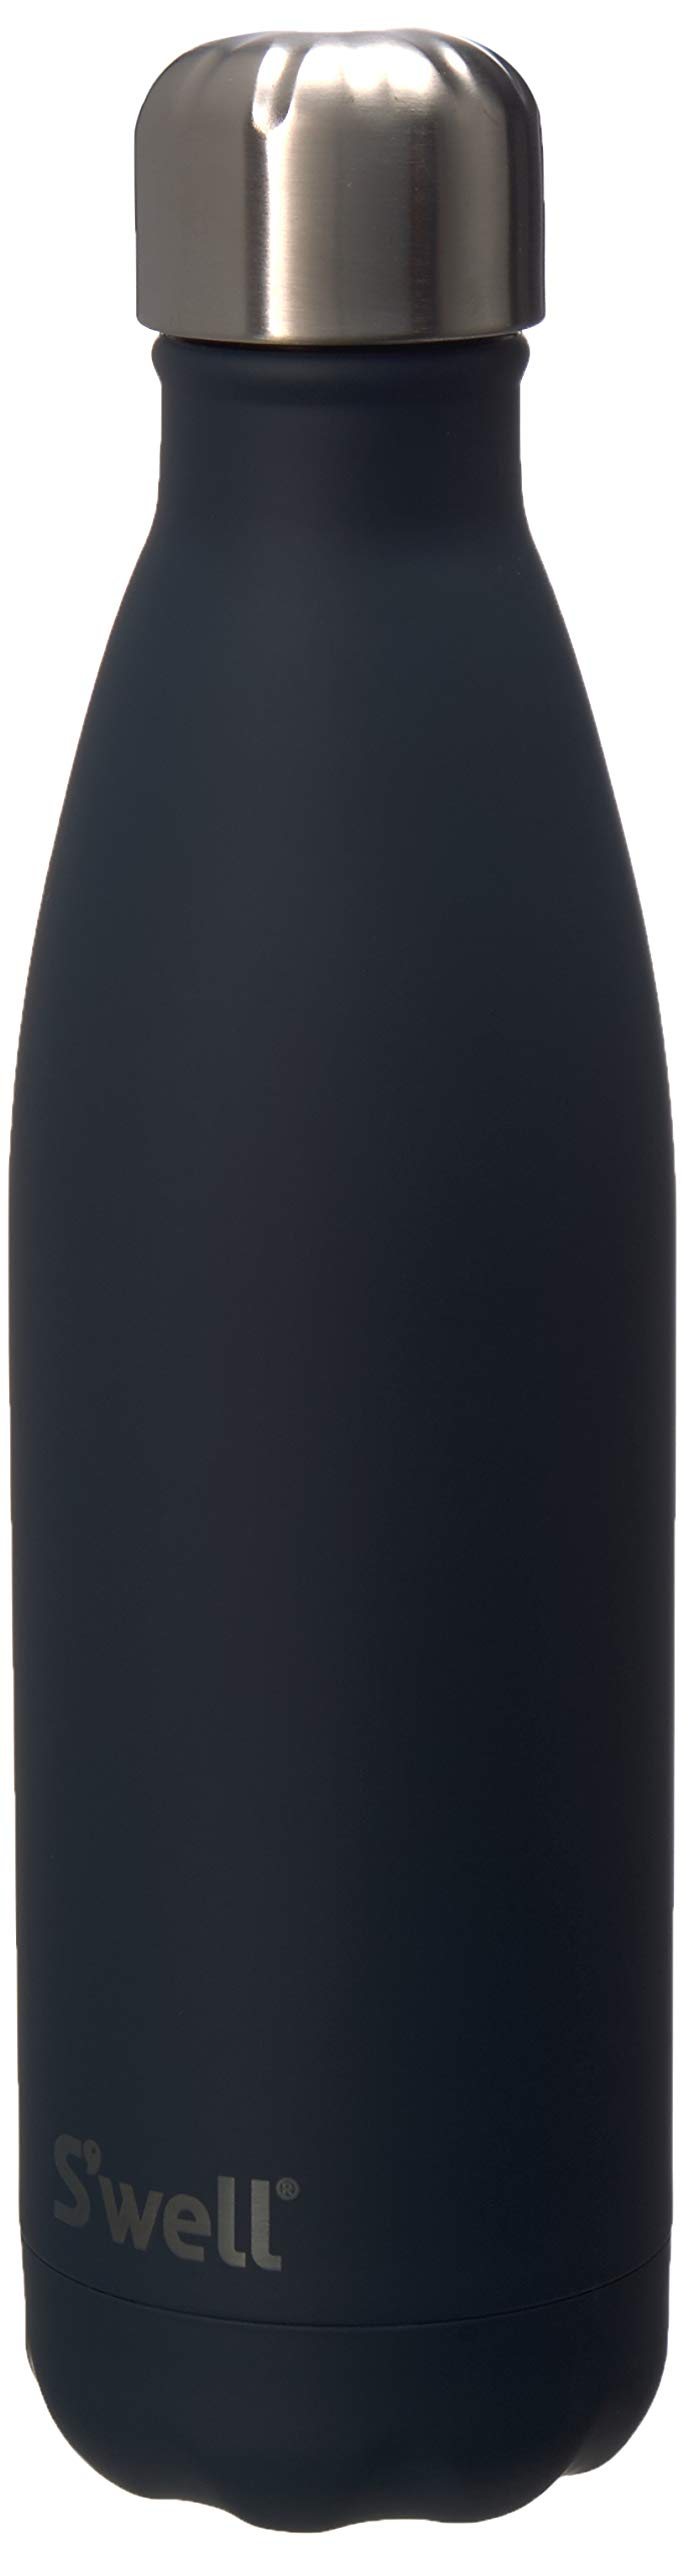 S'well 10017-B19-35120 Stainless Steel Water Bottle, 17oz, Dusk by S'well